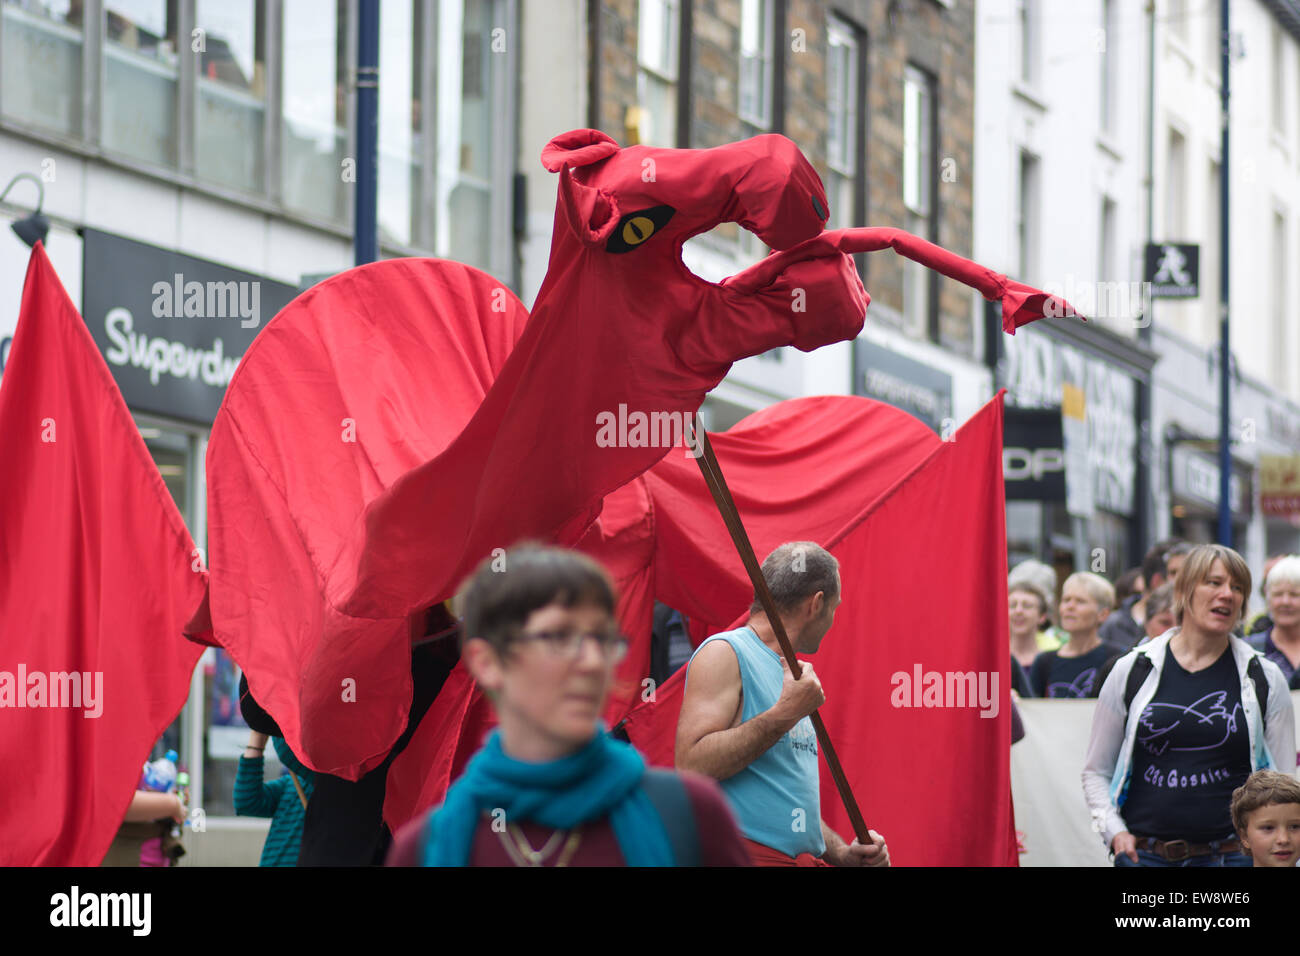 Aberystwyth, Ceredigion, West Wales UK, 20th June, 2015. Protesters take to the streets bringing the High St to - Stock Image